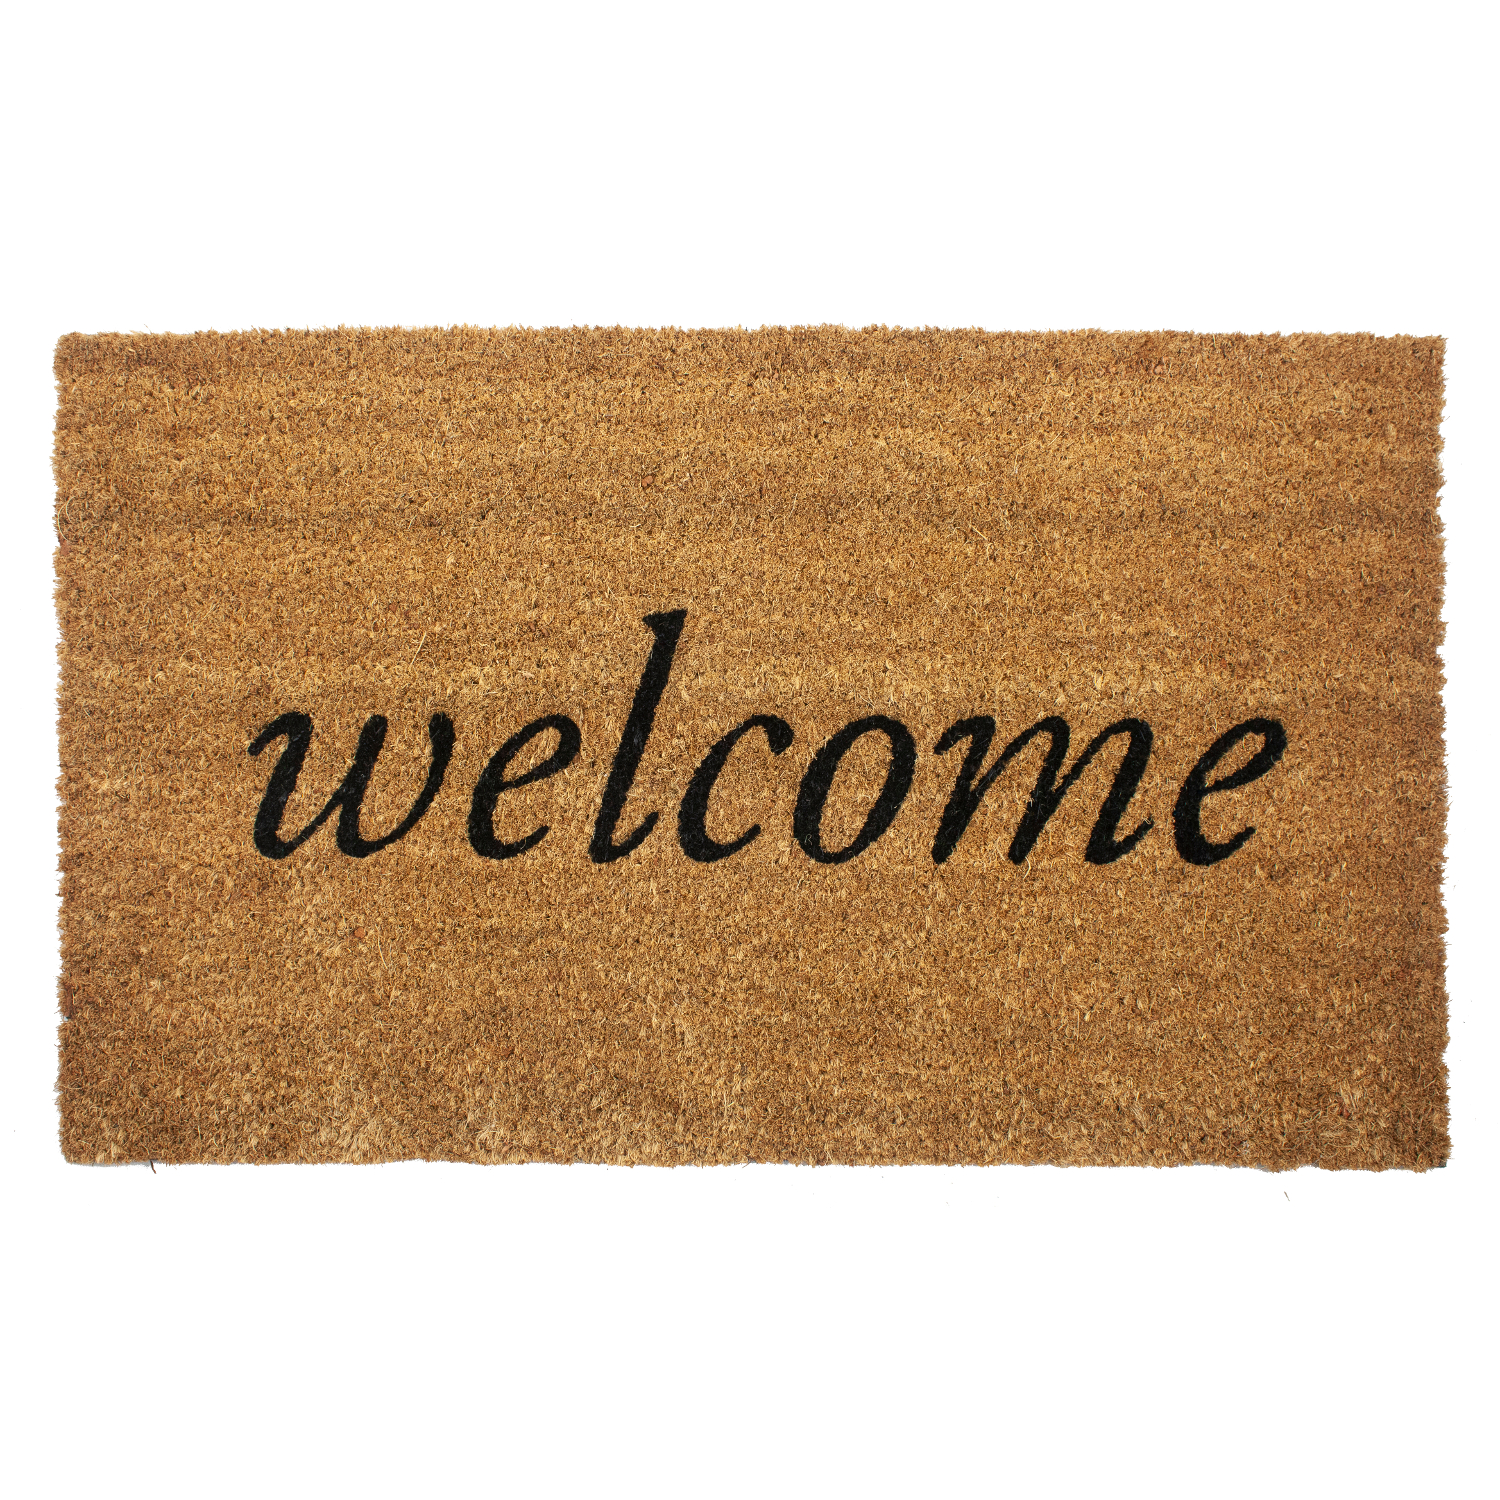 Entryways Welcome 18x30 Inch Coir Doormat with Backing